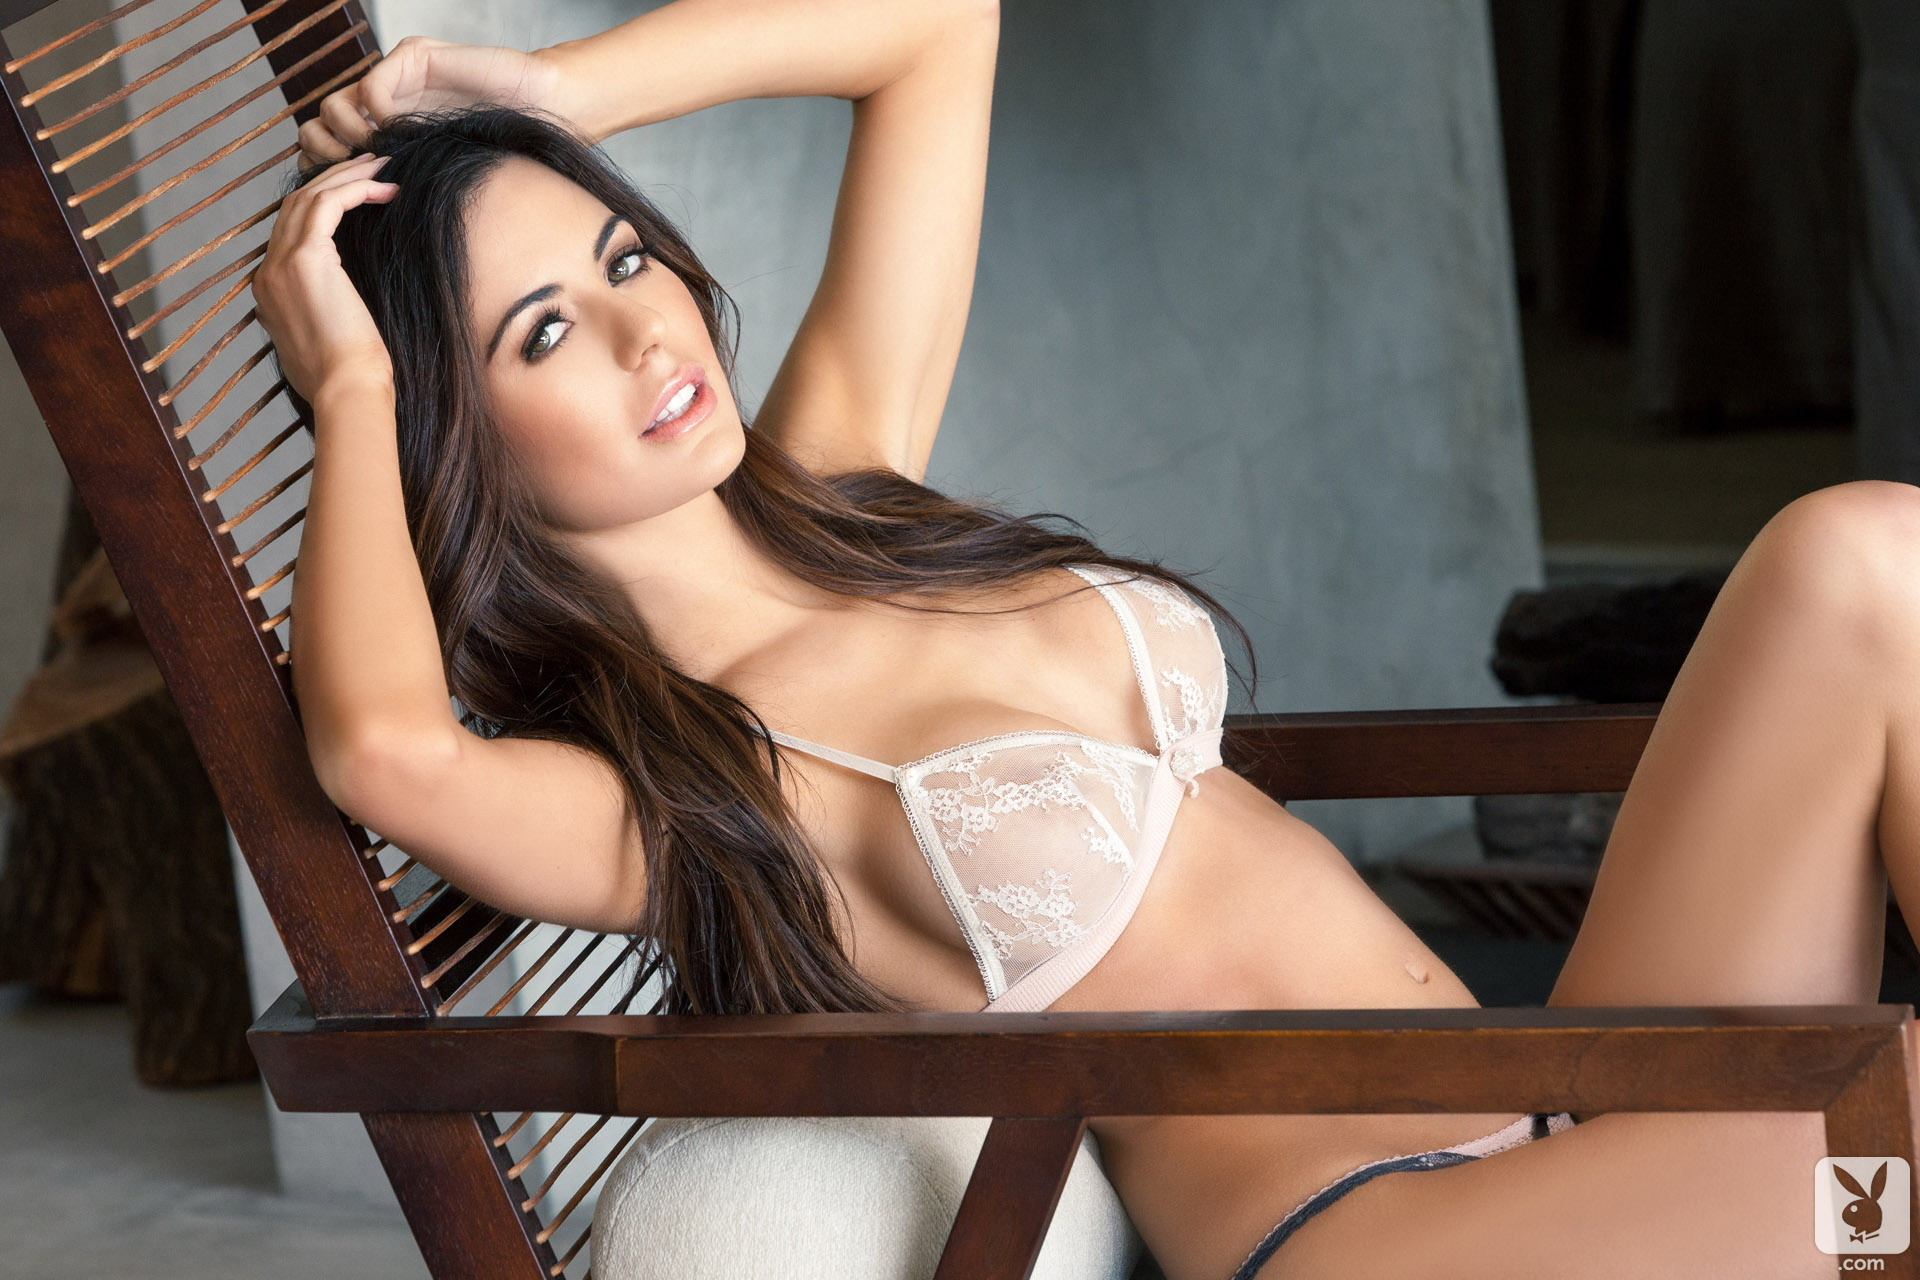 Hottest Babes  top naked girls amazing sexy busty babes